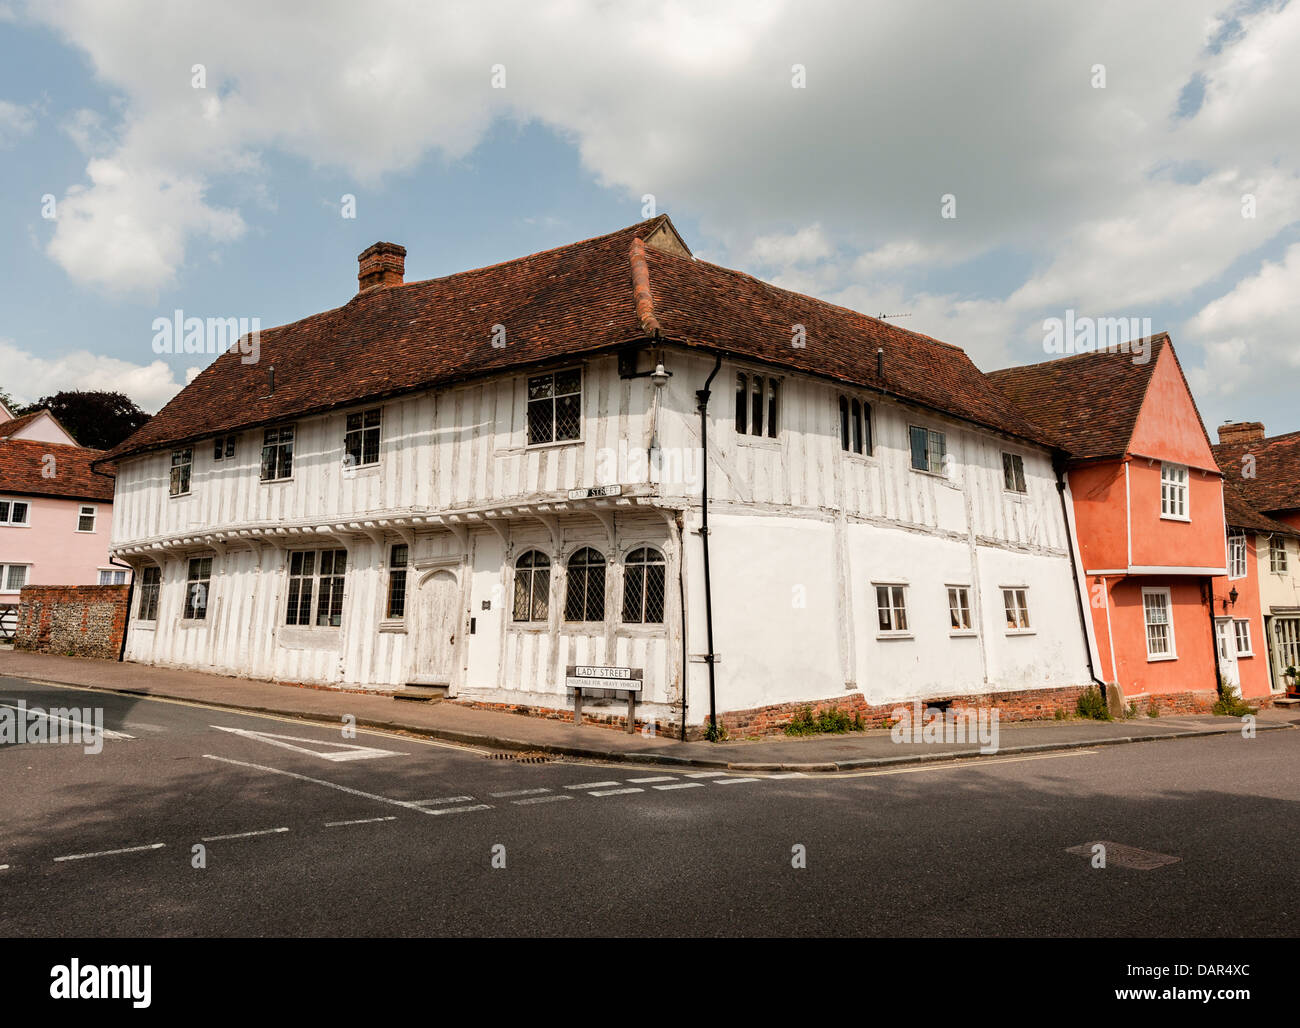 15th Century Timber Frame House in Lavenham Suffolk - Stock Image